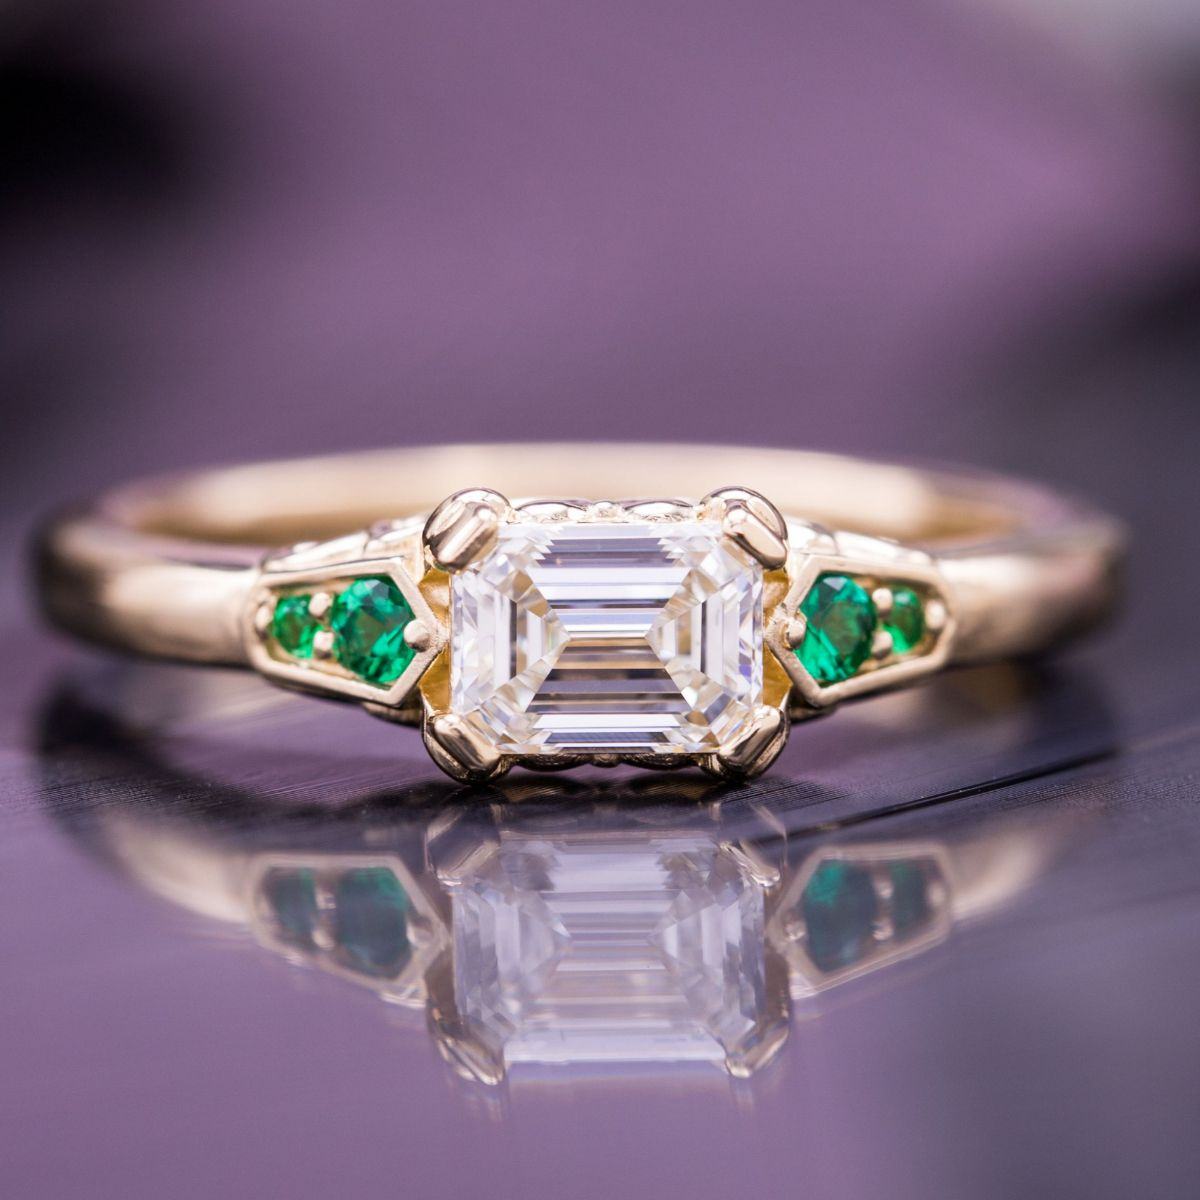 The Angular Step Cut Emerald Center Stone And Round Emeralds Set In Kite Shaped Shoulder Details Bring Geometry This Design: Art Deco Jewelry Wedding Rings At Websimilar.org